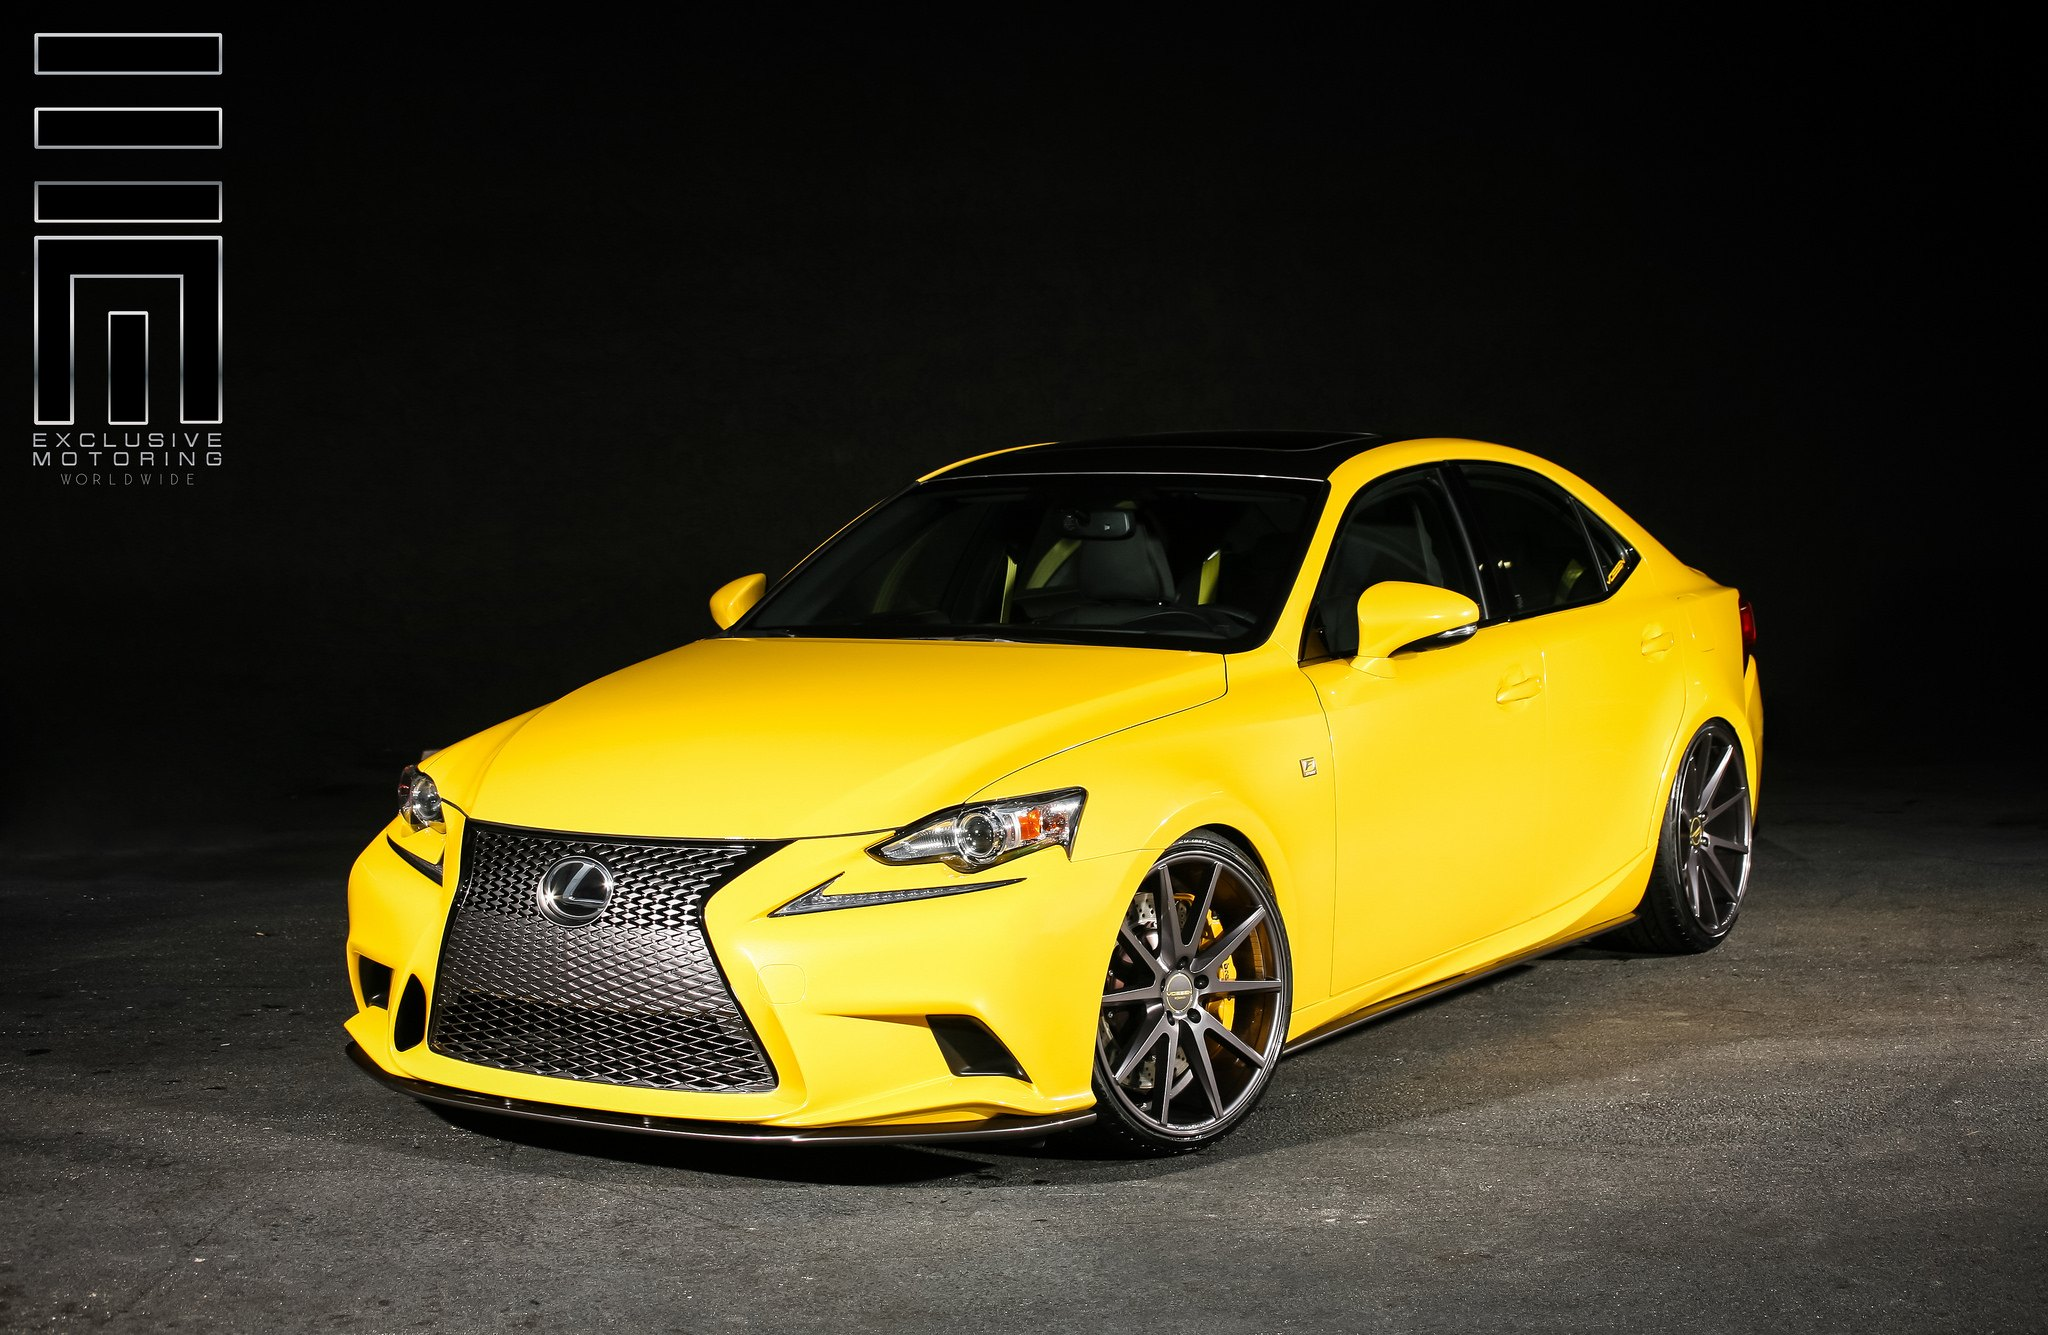 Screaming Yellow Lexus IS F On Vossens   Photo By Exclusive Motoring